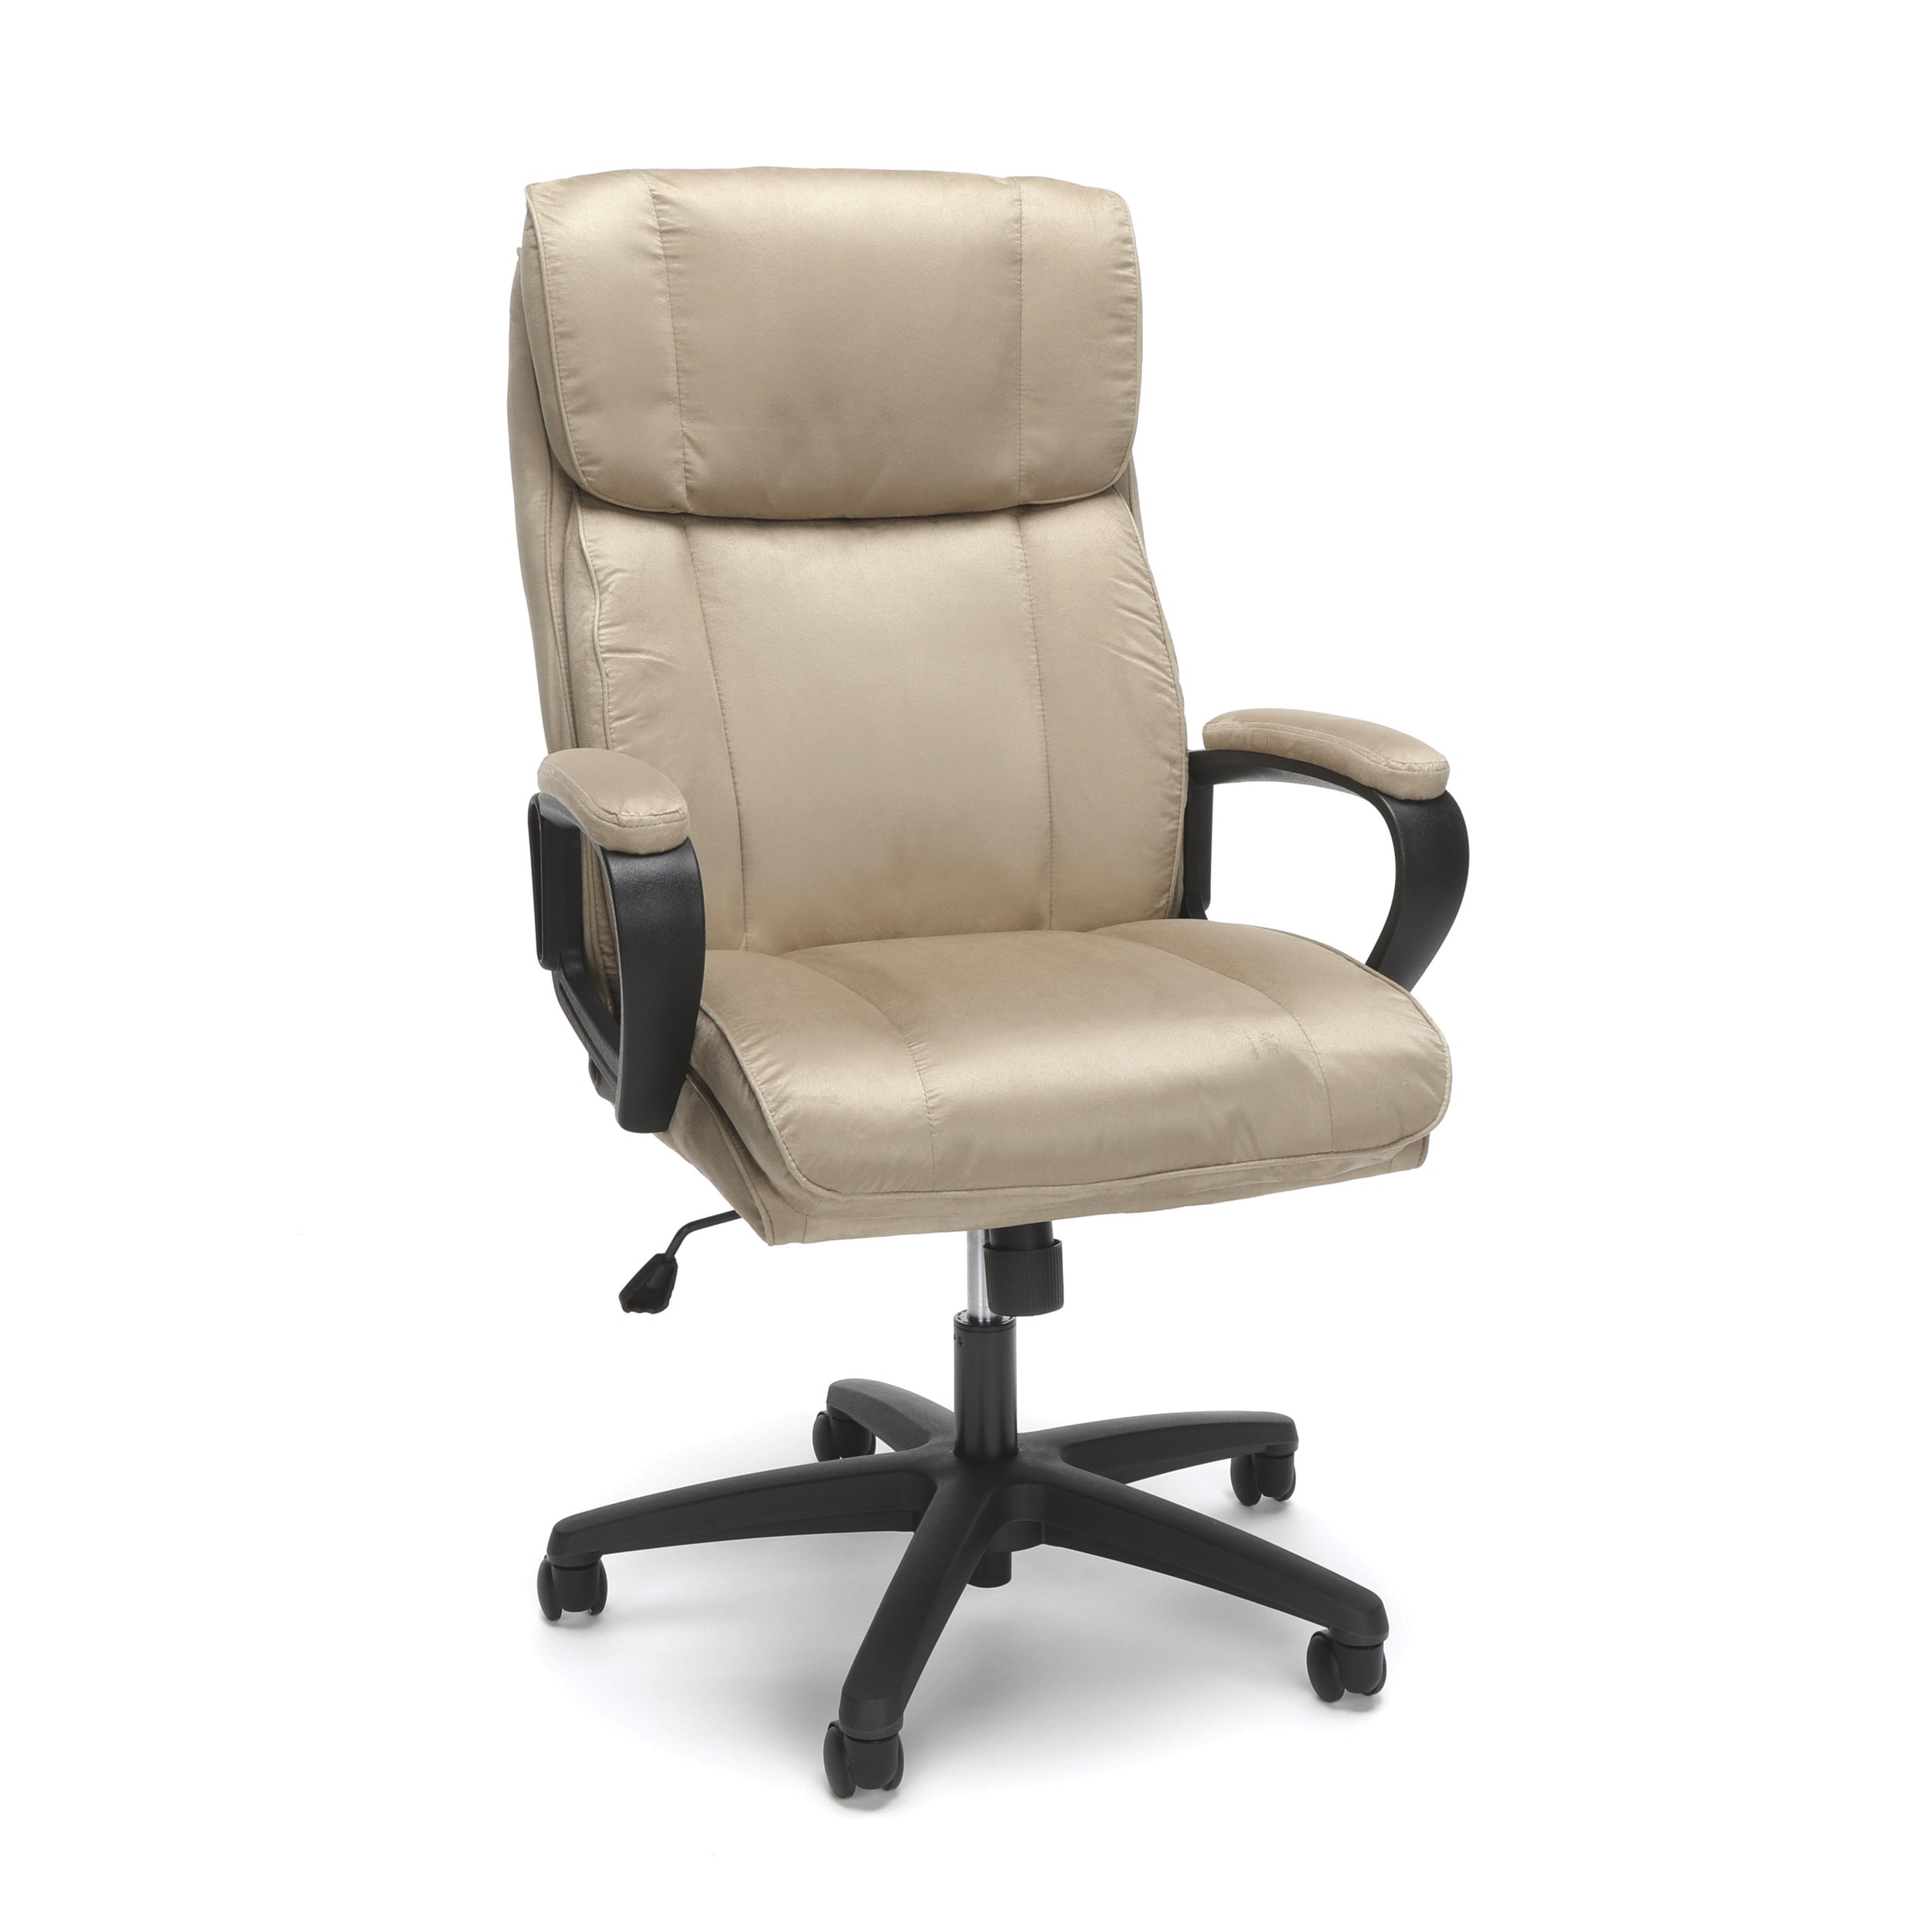 Essentials by OFM ESS-3081 Plush High-Back Microfiber Office Chair Tan - Walmart.com  sc 1 st  Walmart & Essentials by OFM ESS-3081 Plush High-Back Microfiber Office Chair ...